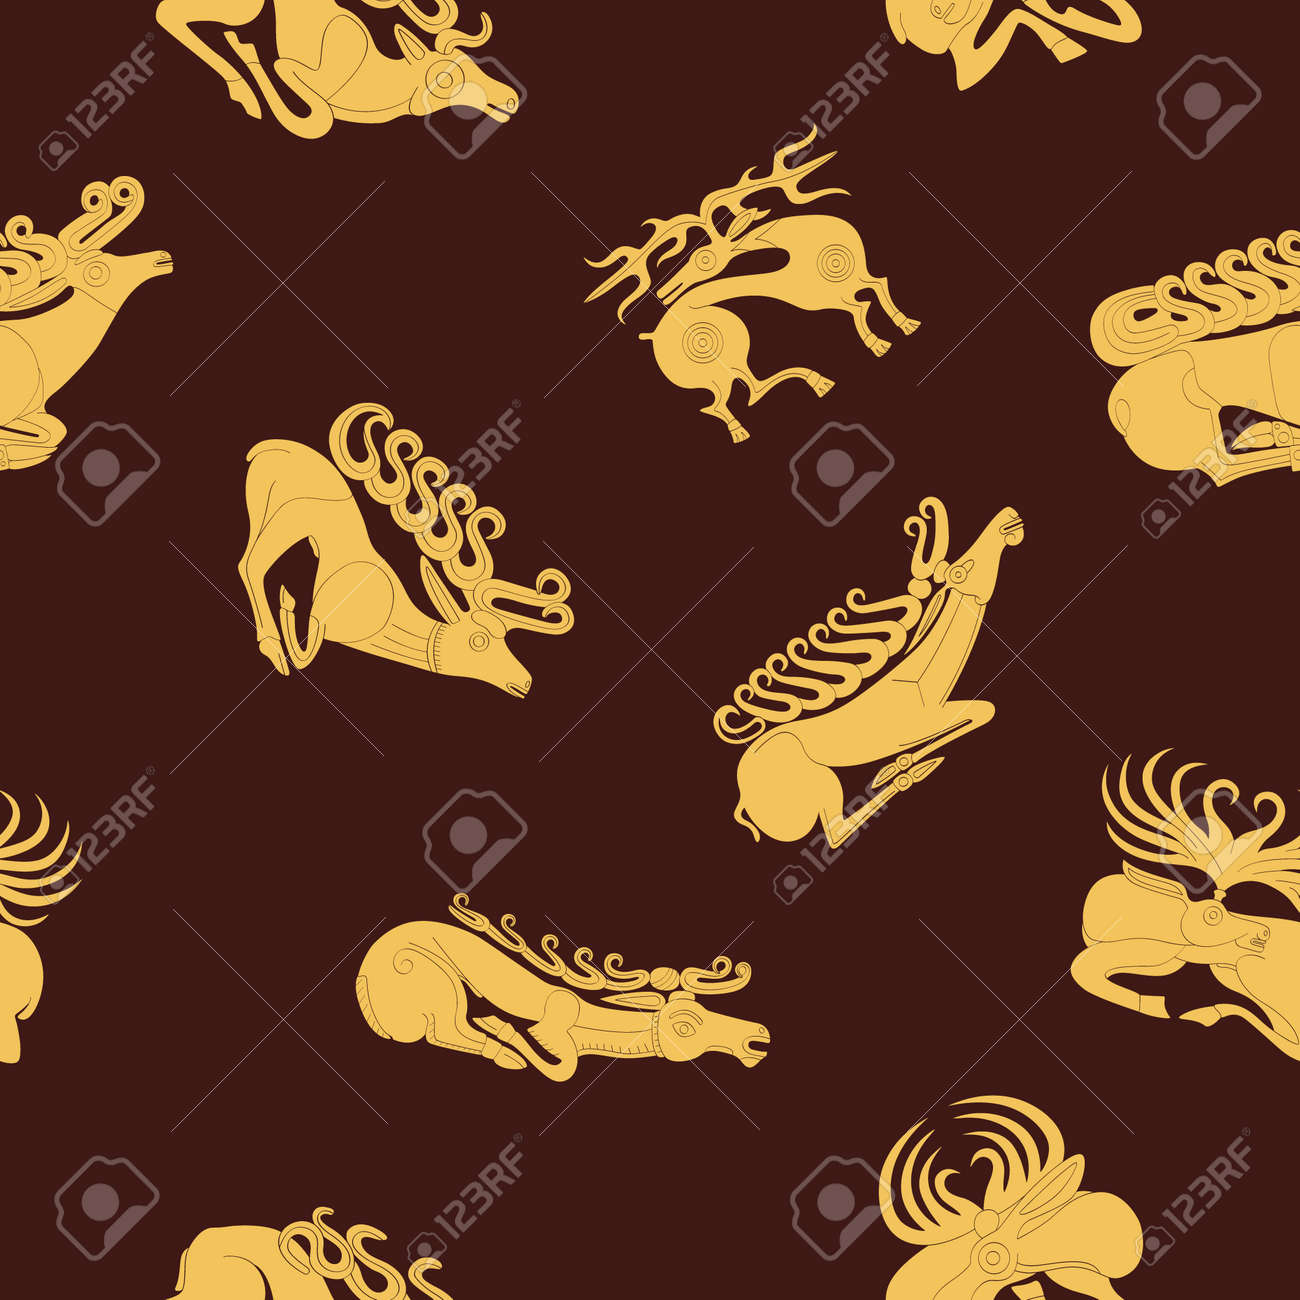 Seamless pattern with ancient Scythian art and animal motifs for your project - 166590944